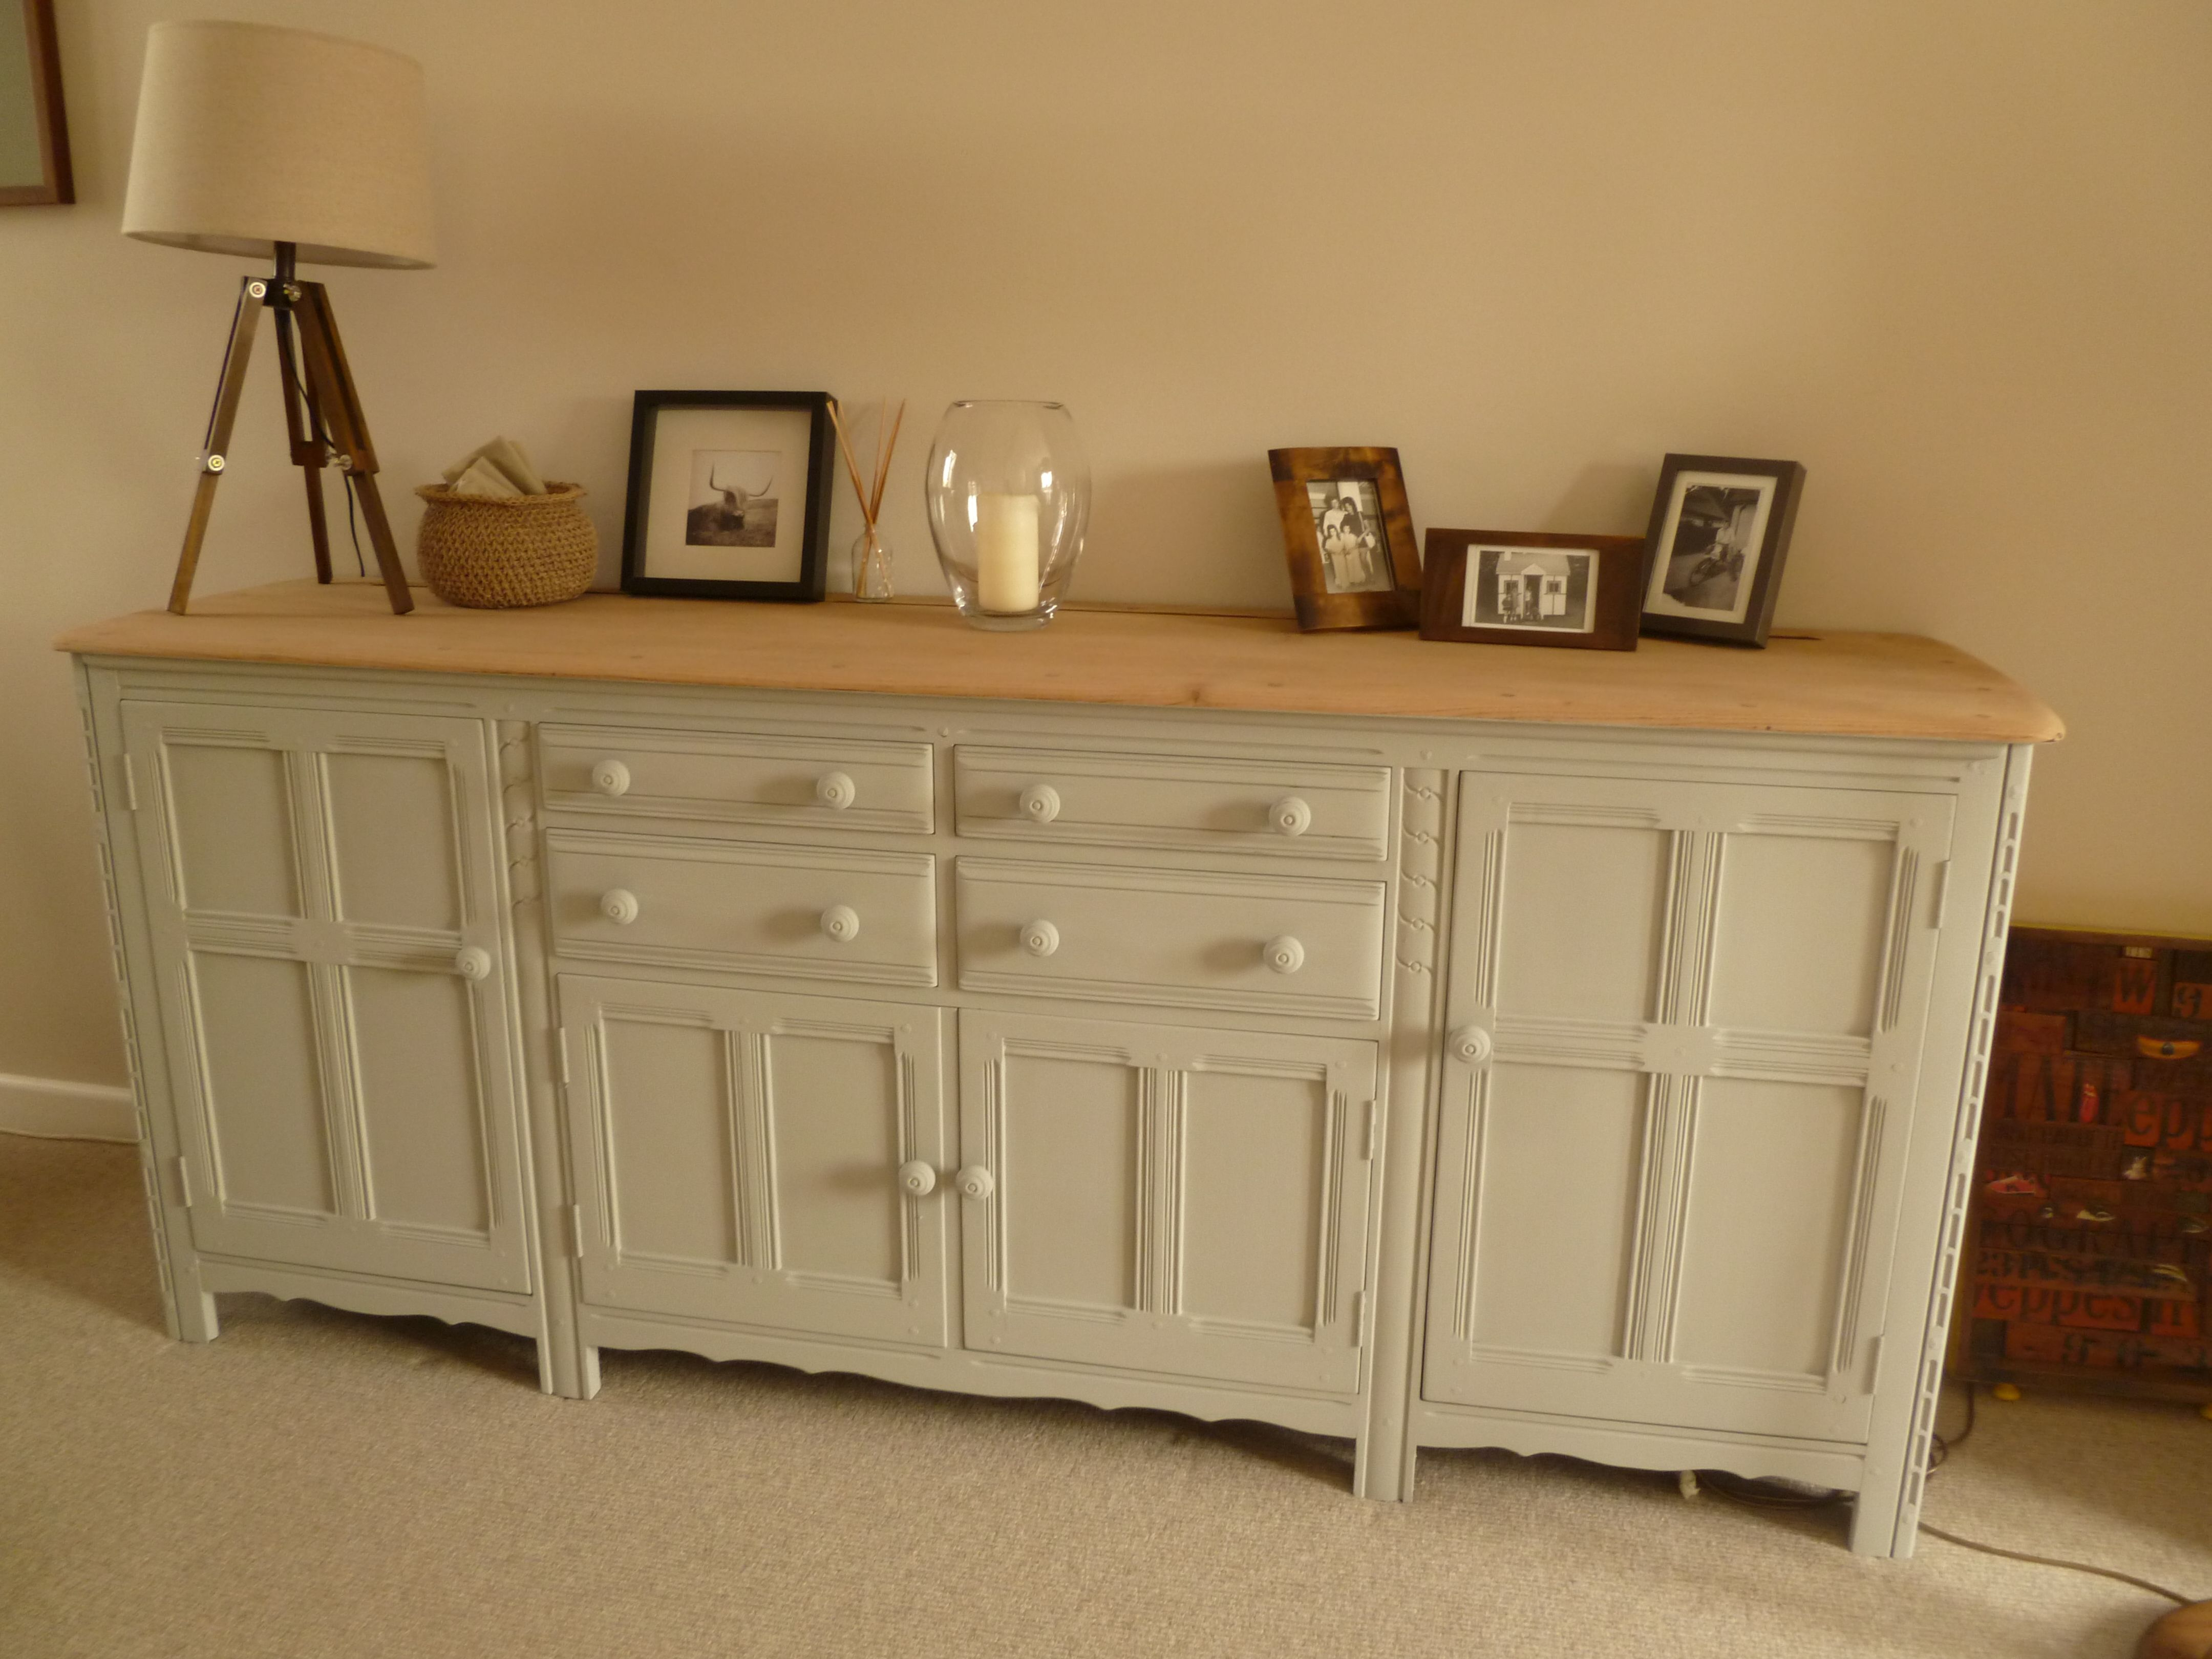 Ercol Dresser Originally Very Dark Stained Wood Top Sanded Back And Left Natural The